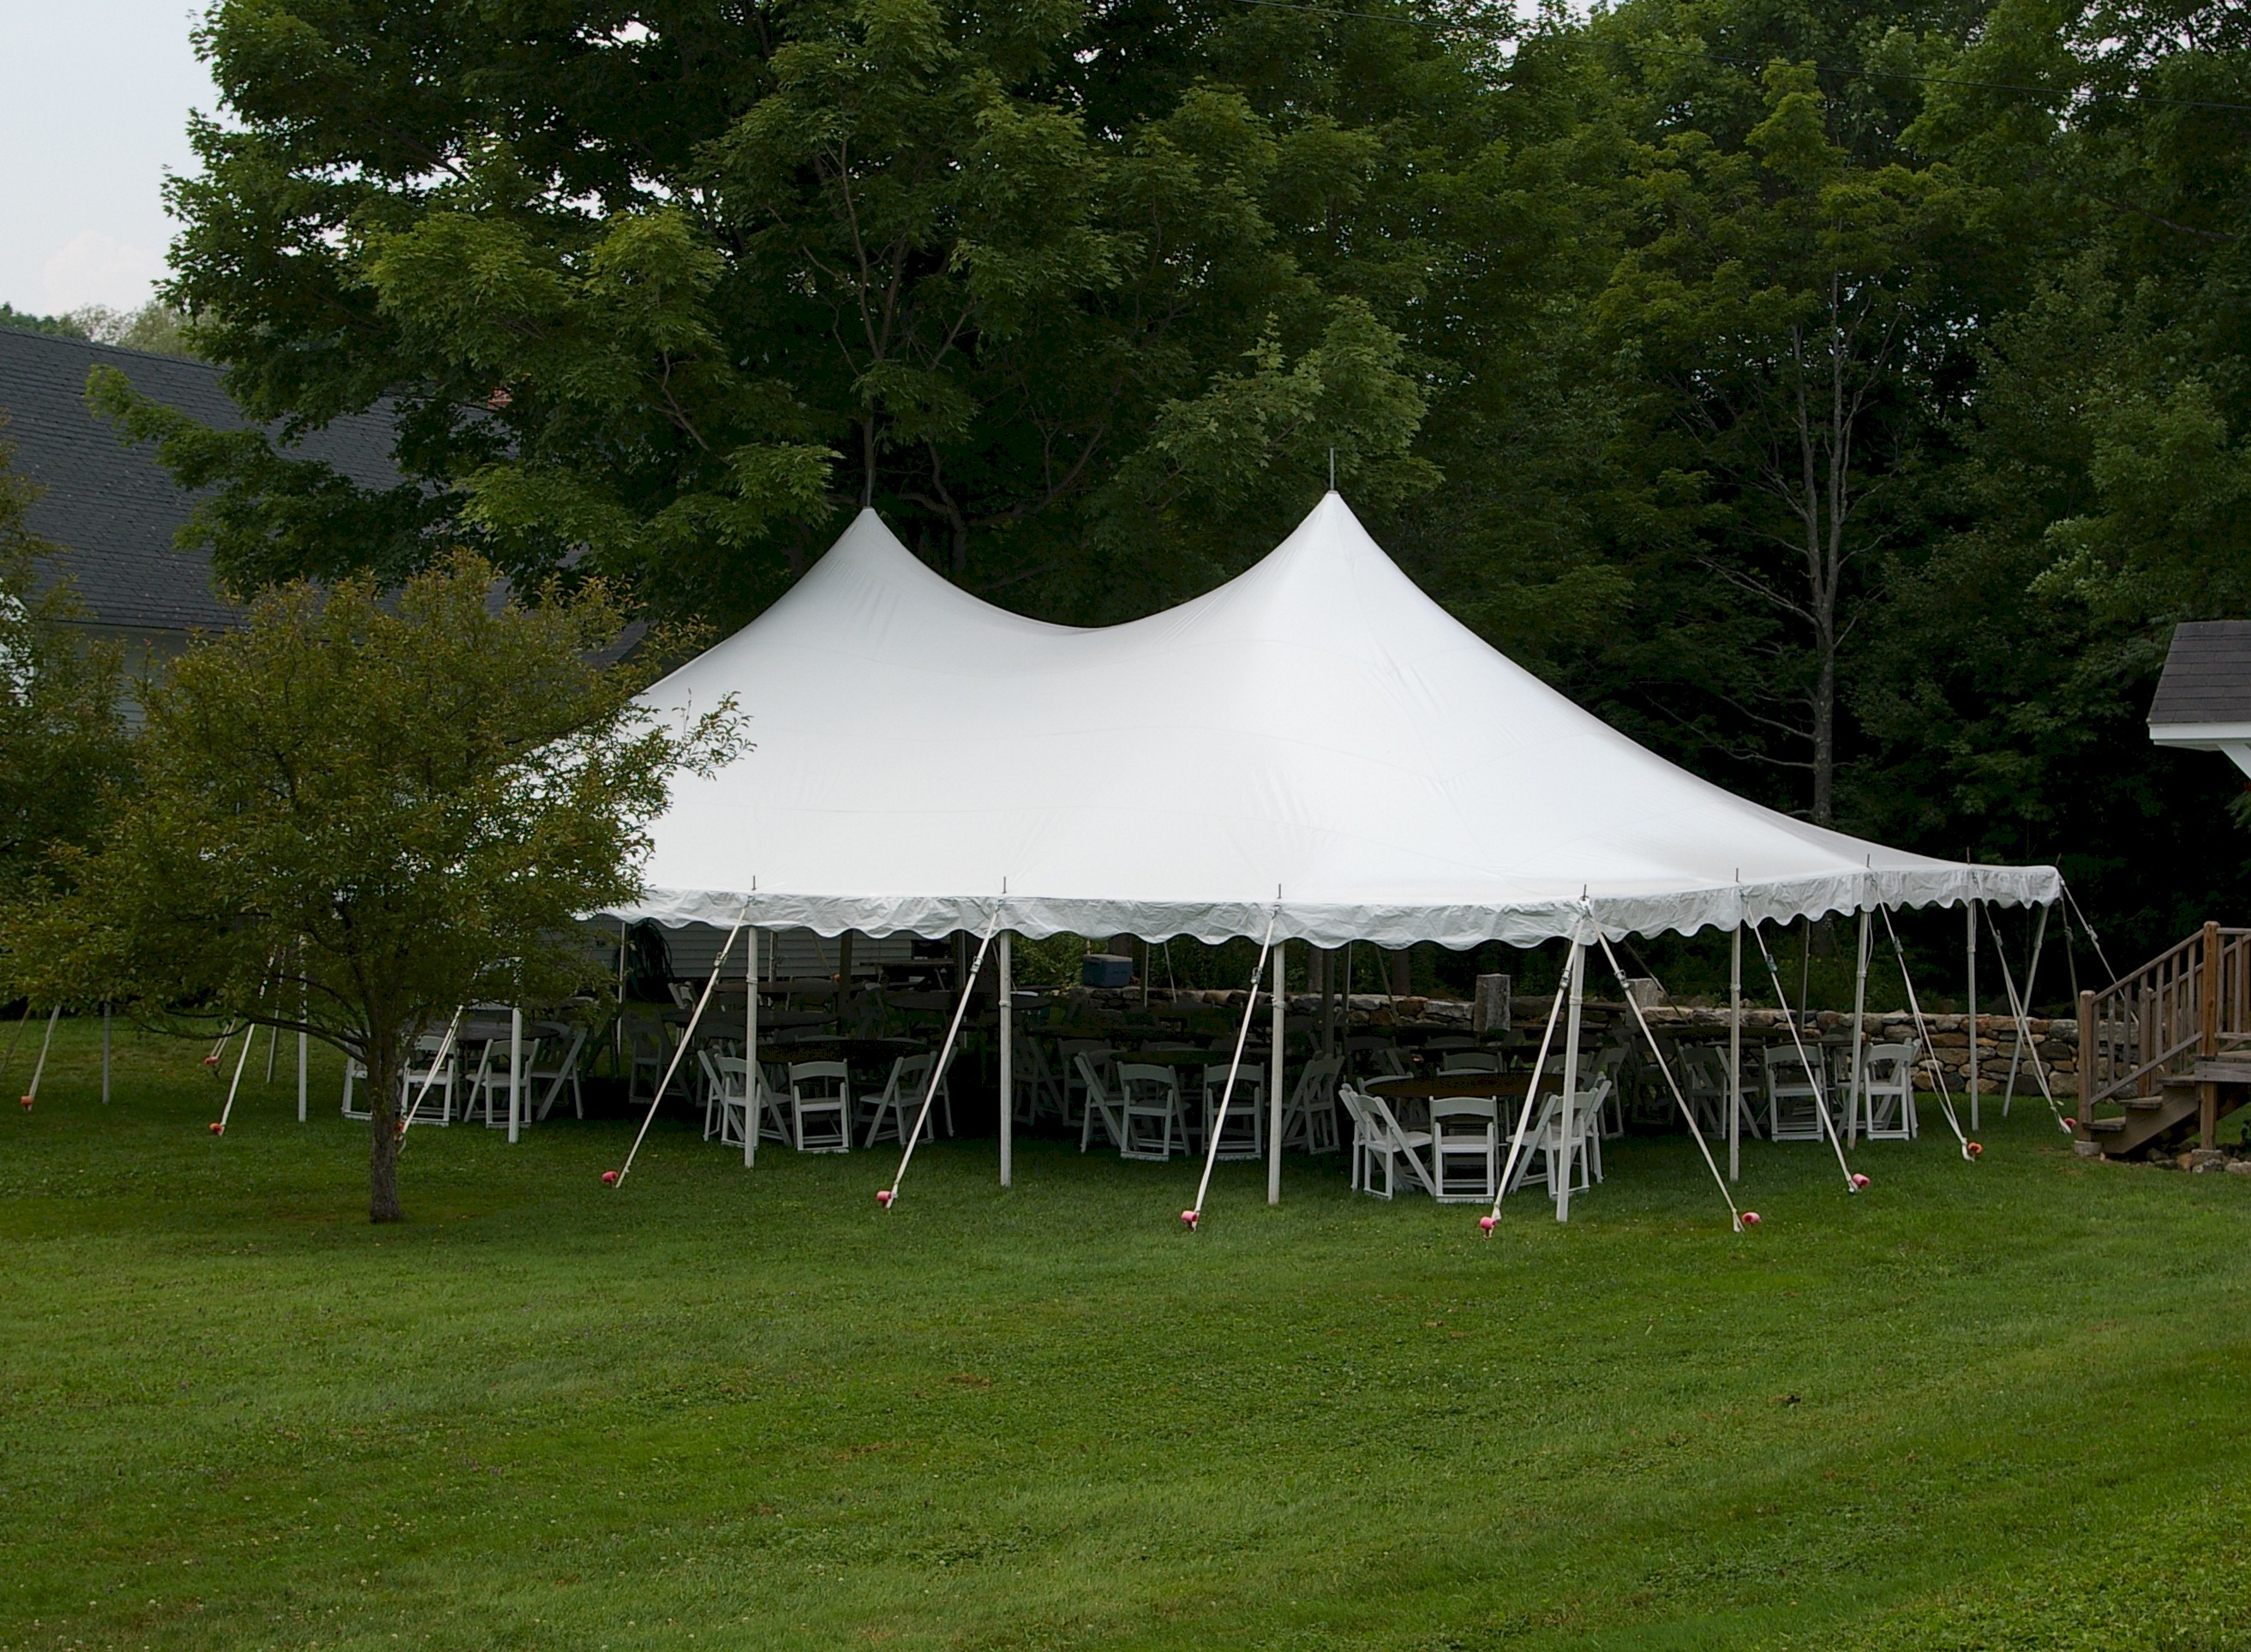 30x45-Pole-Tent - THIS IS MEDIA - G & K Event Rentals